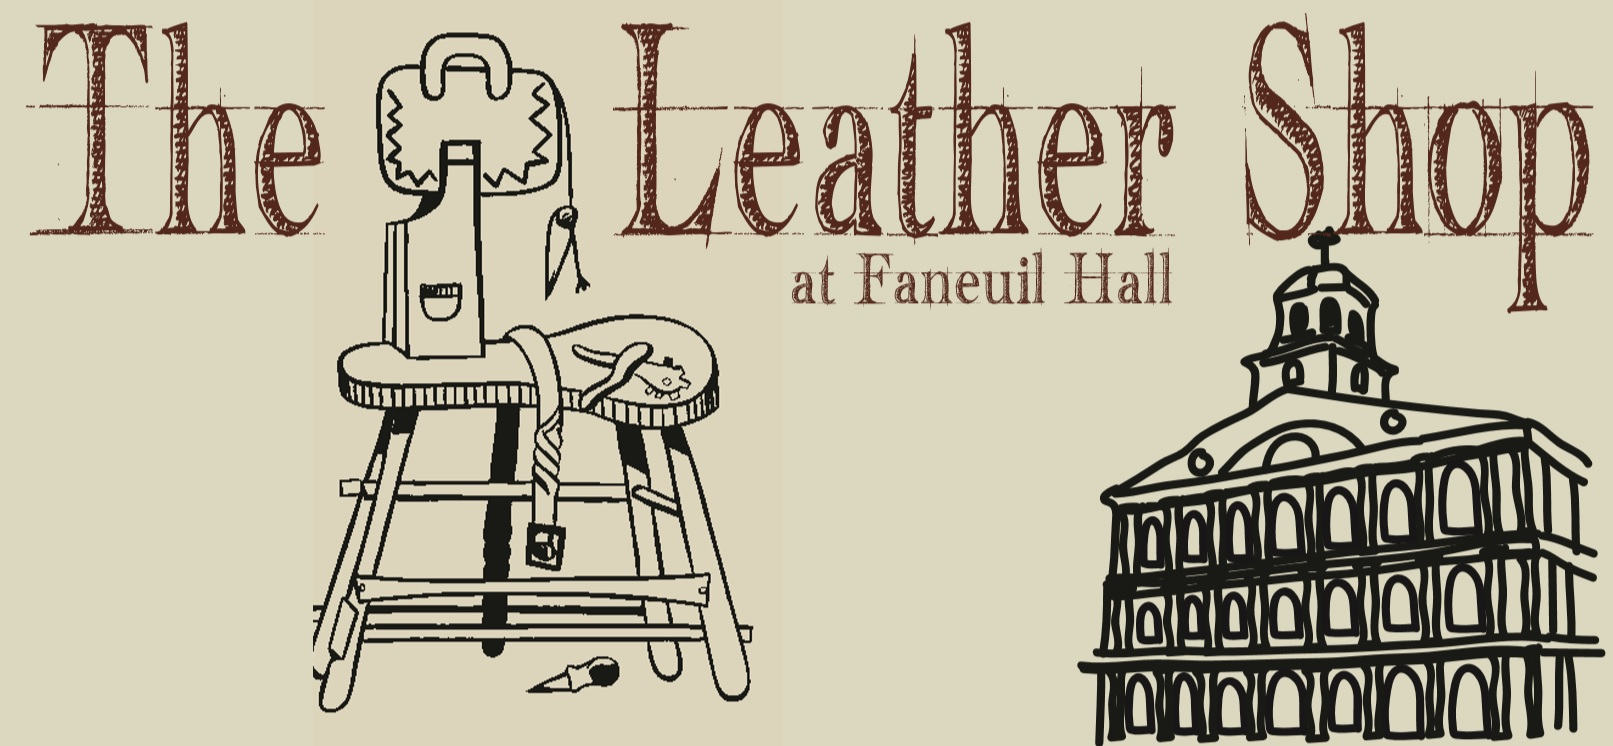 Leather Store in Boston, Massachusetts